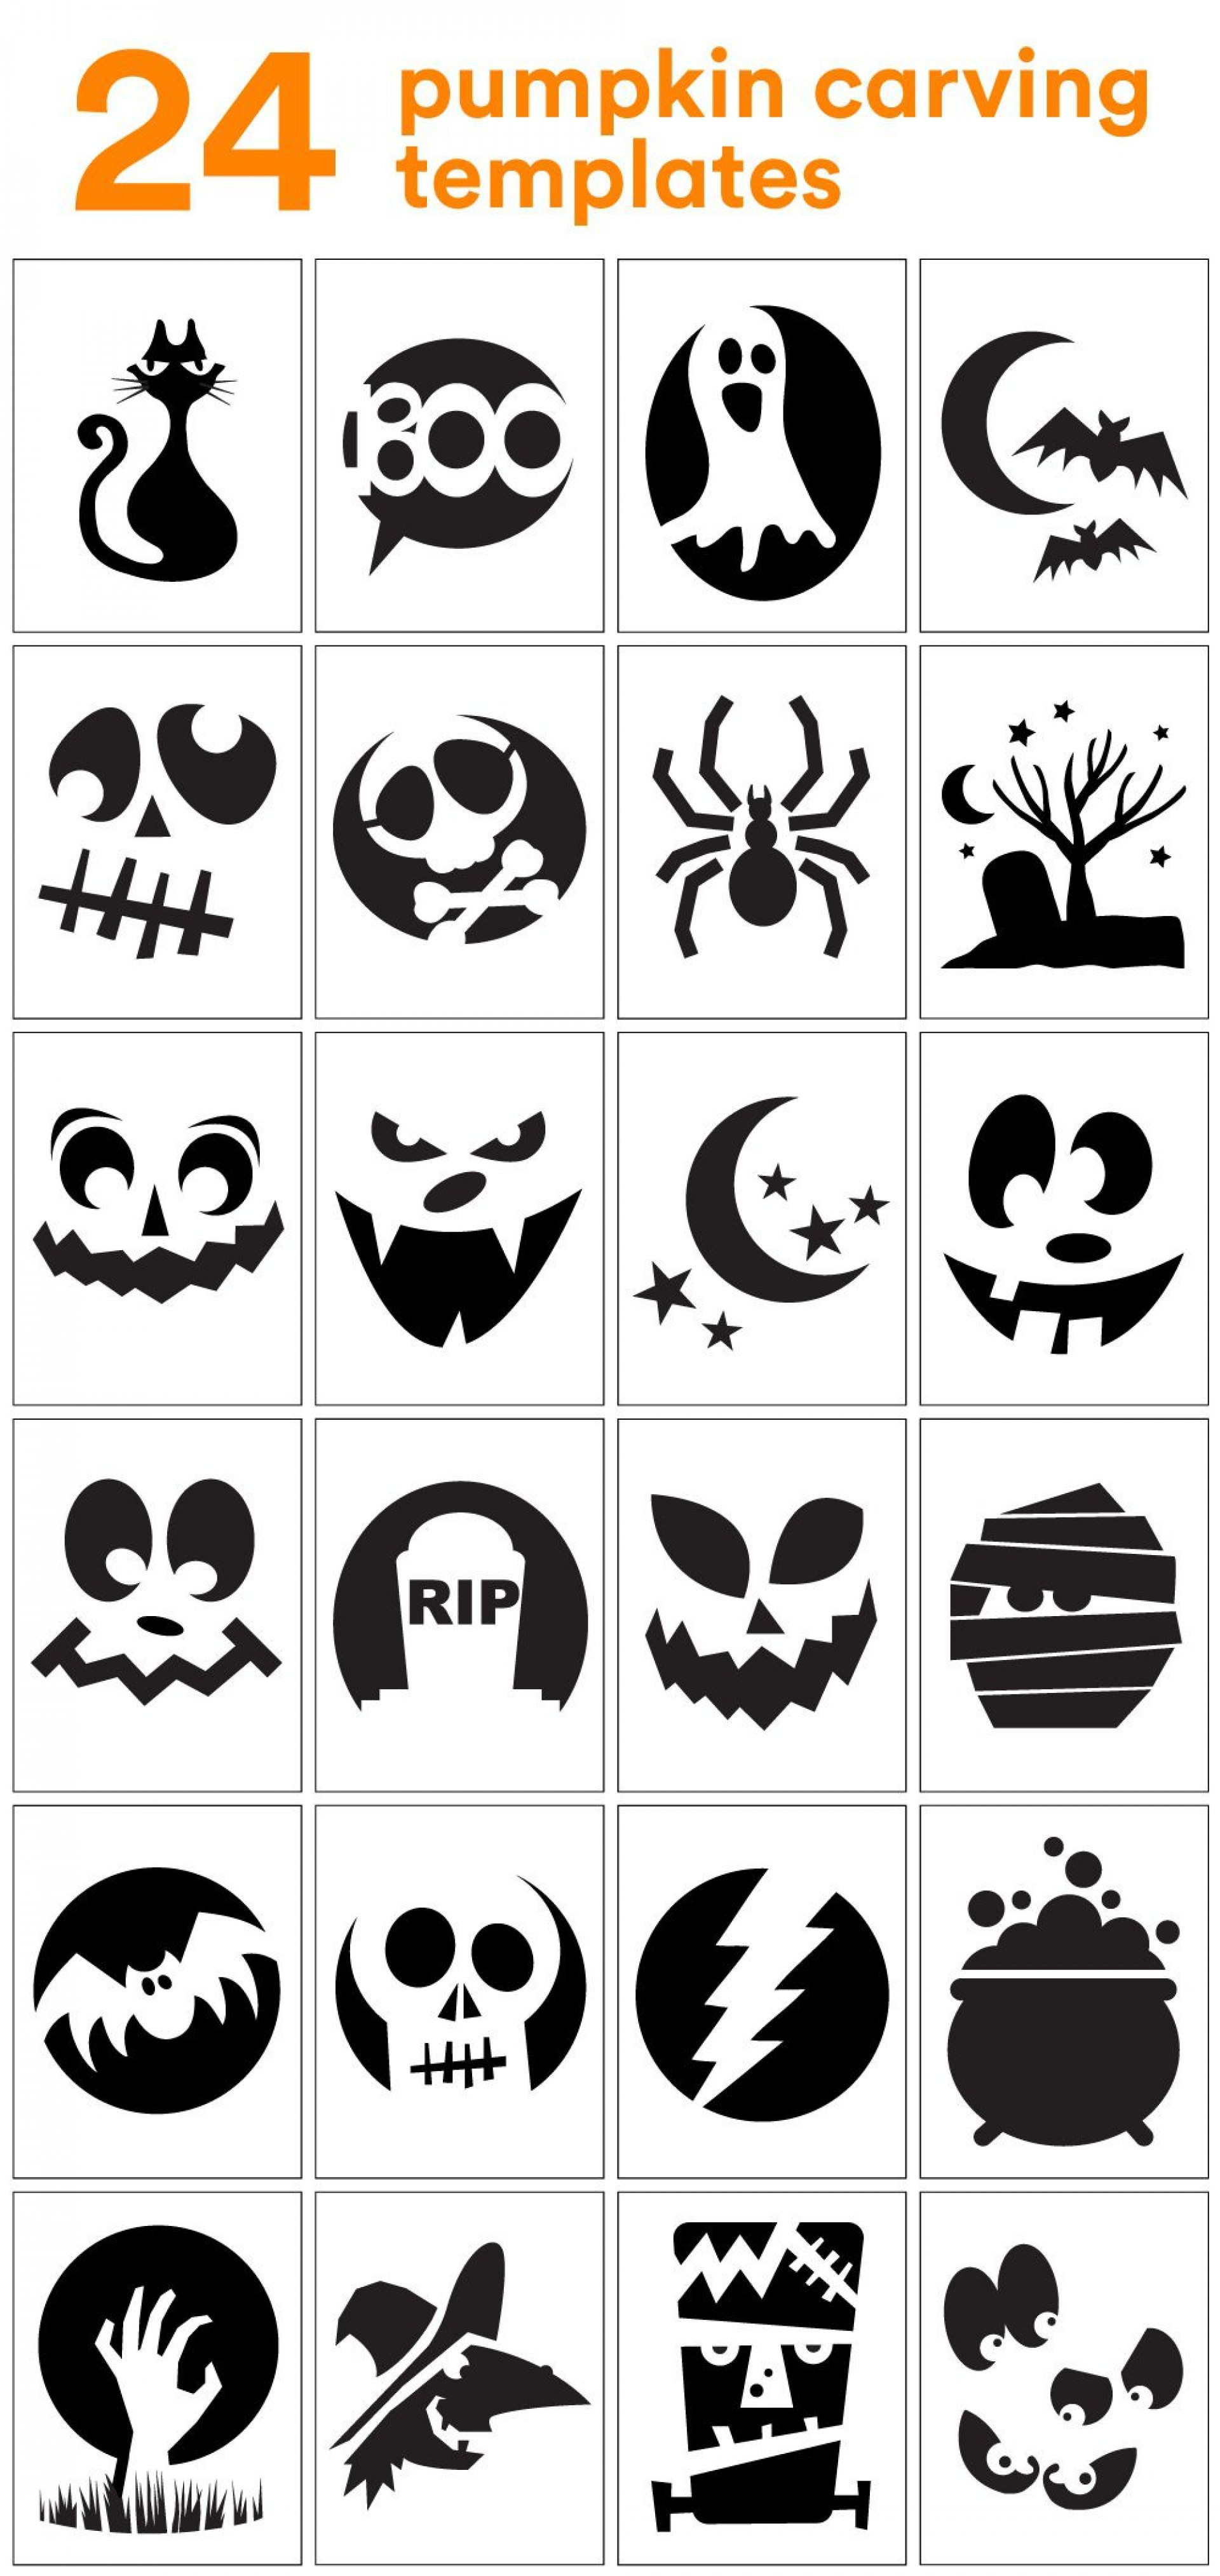 006 Top Free Pumpkin Template Printable High Resolution  Easy Carving Scary Stencil1920